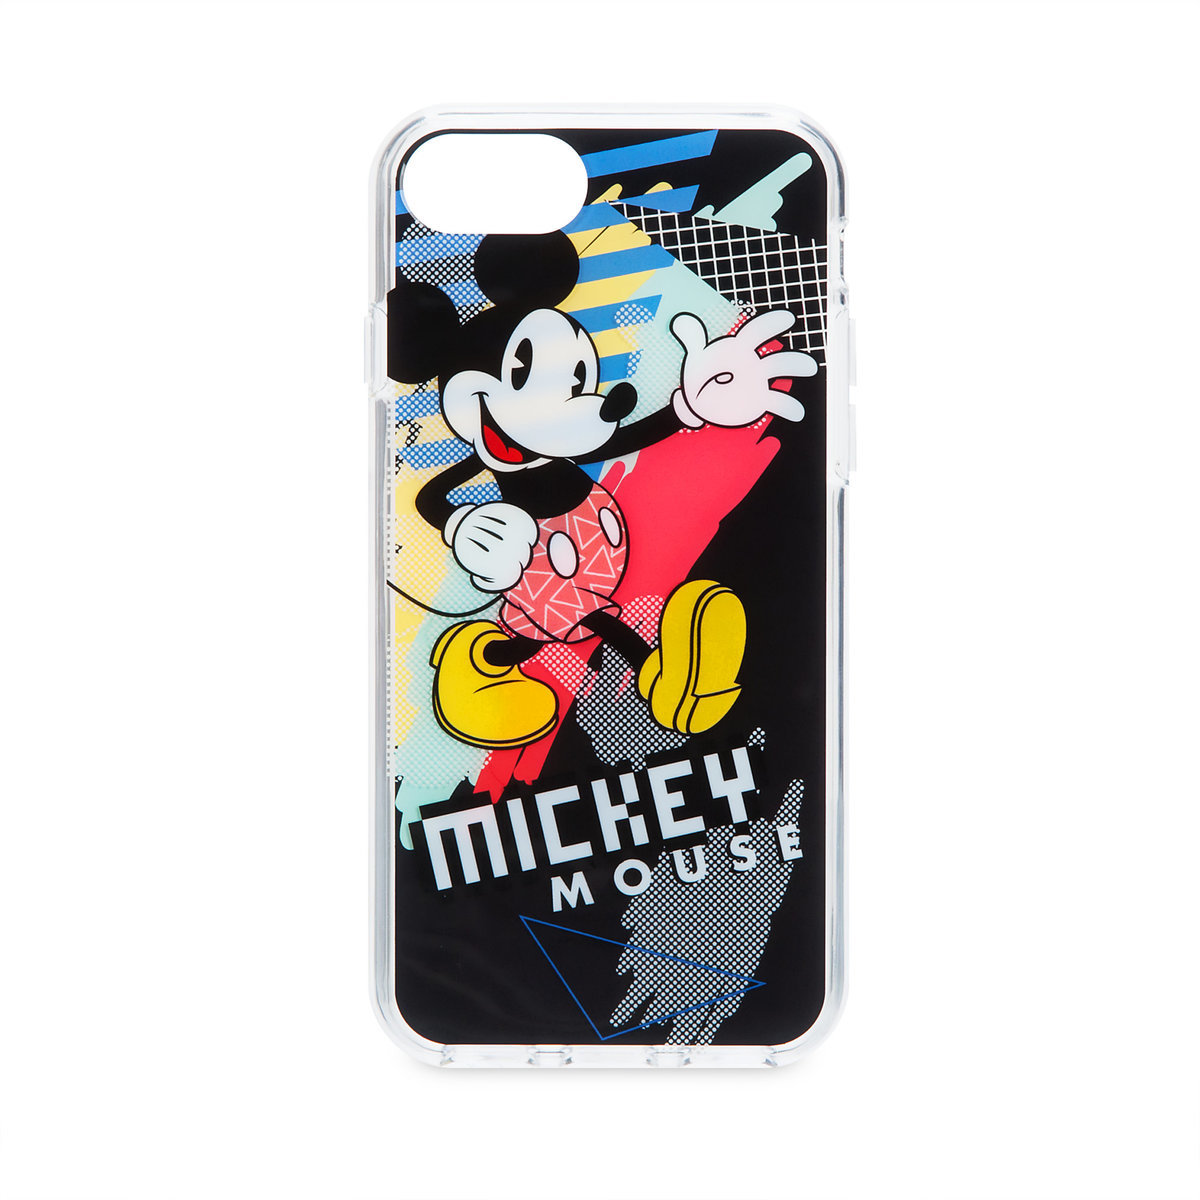 Disney iPhone 7/6/6S Case - Mickey Mouse '80s Flashback